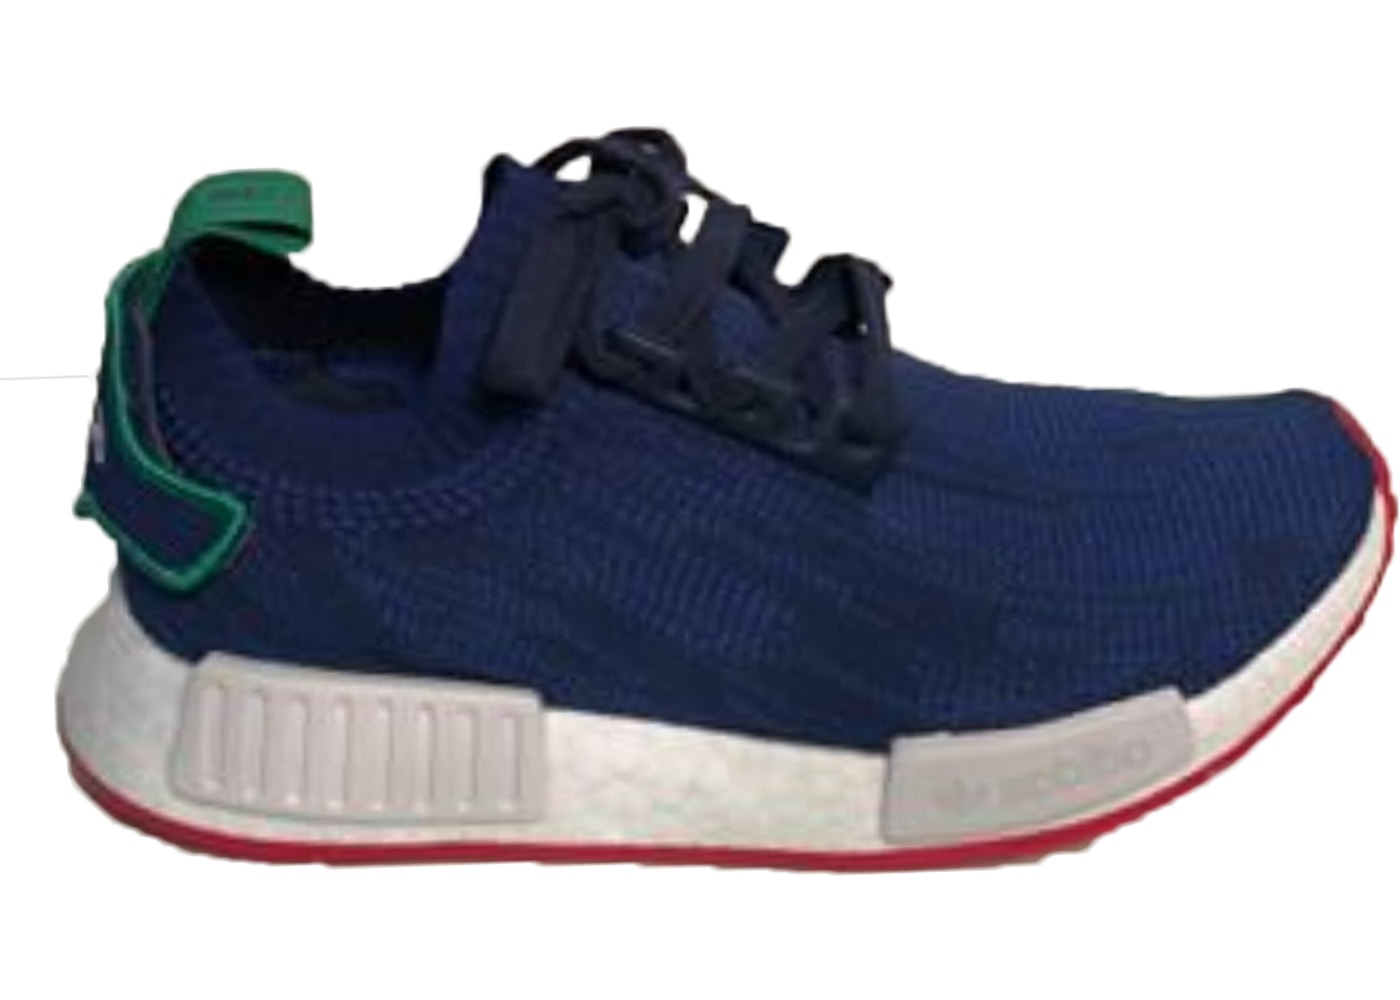 adidas NMD Size 16 Shoes - New Highest Bids